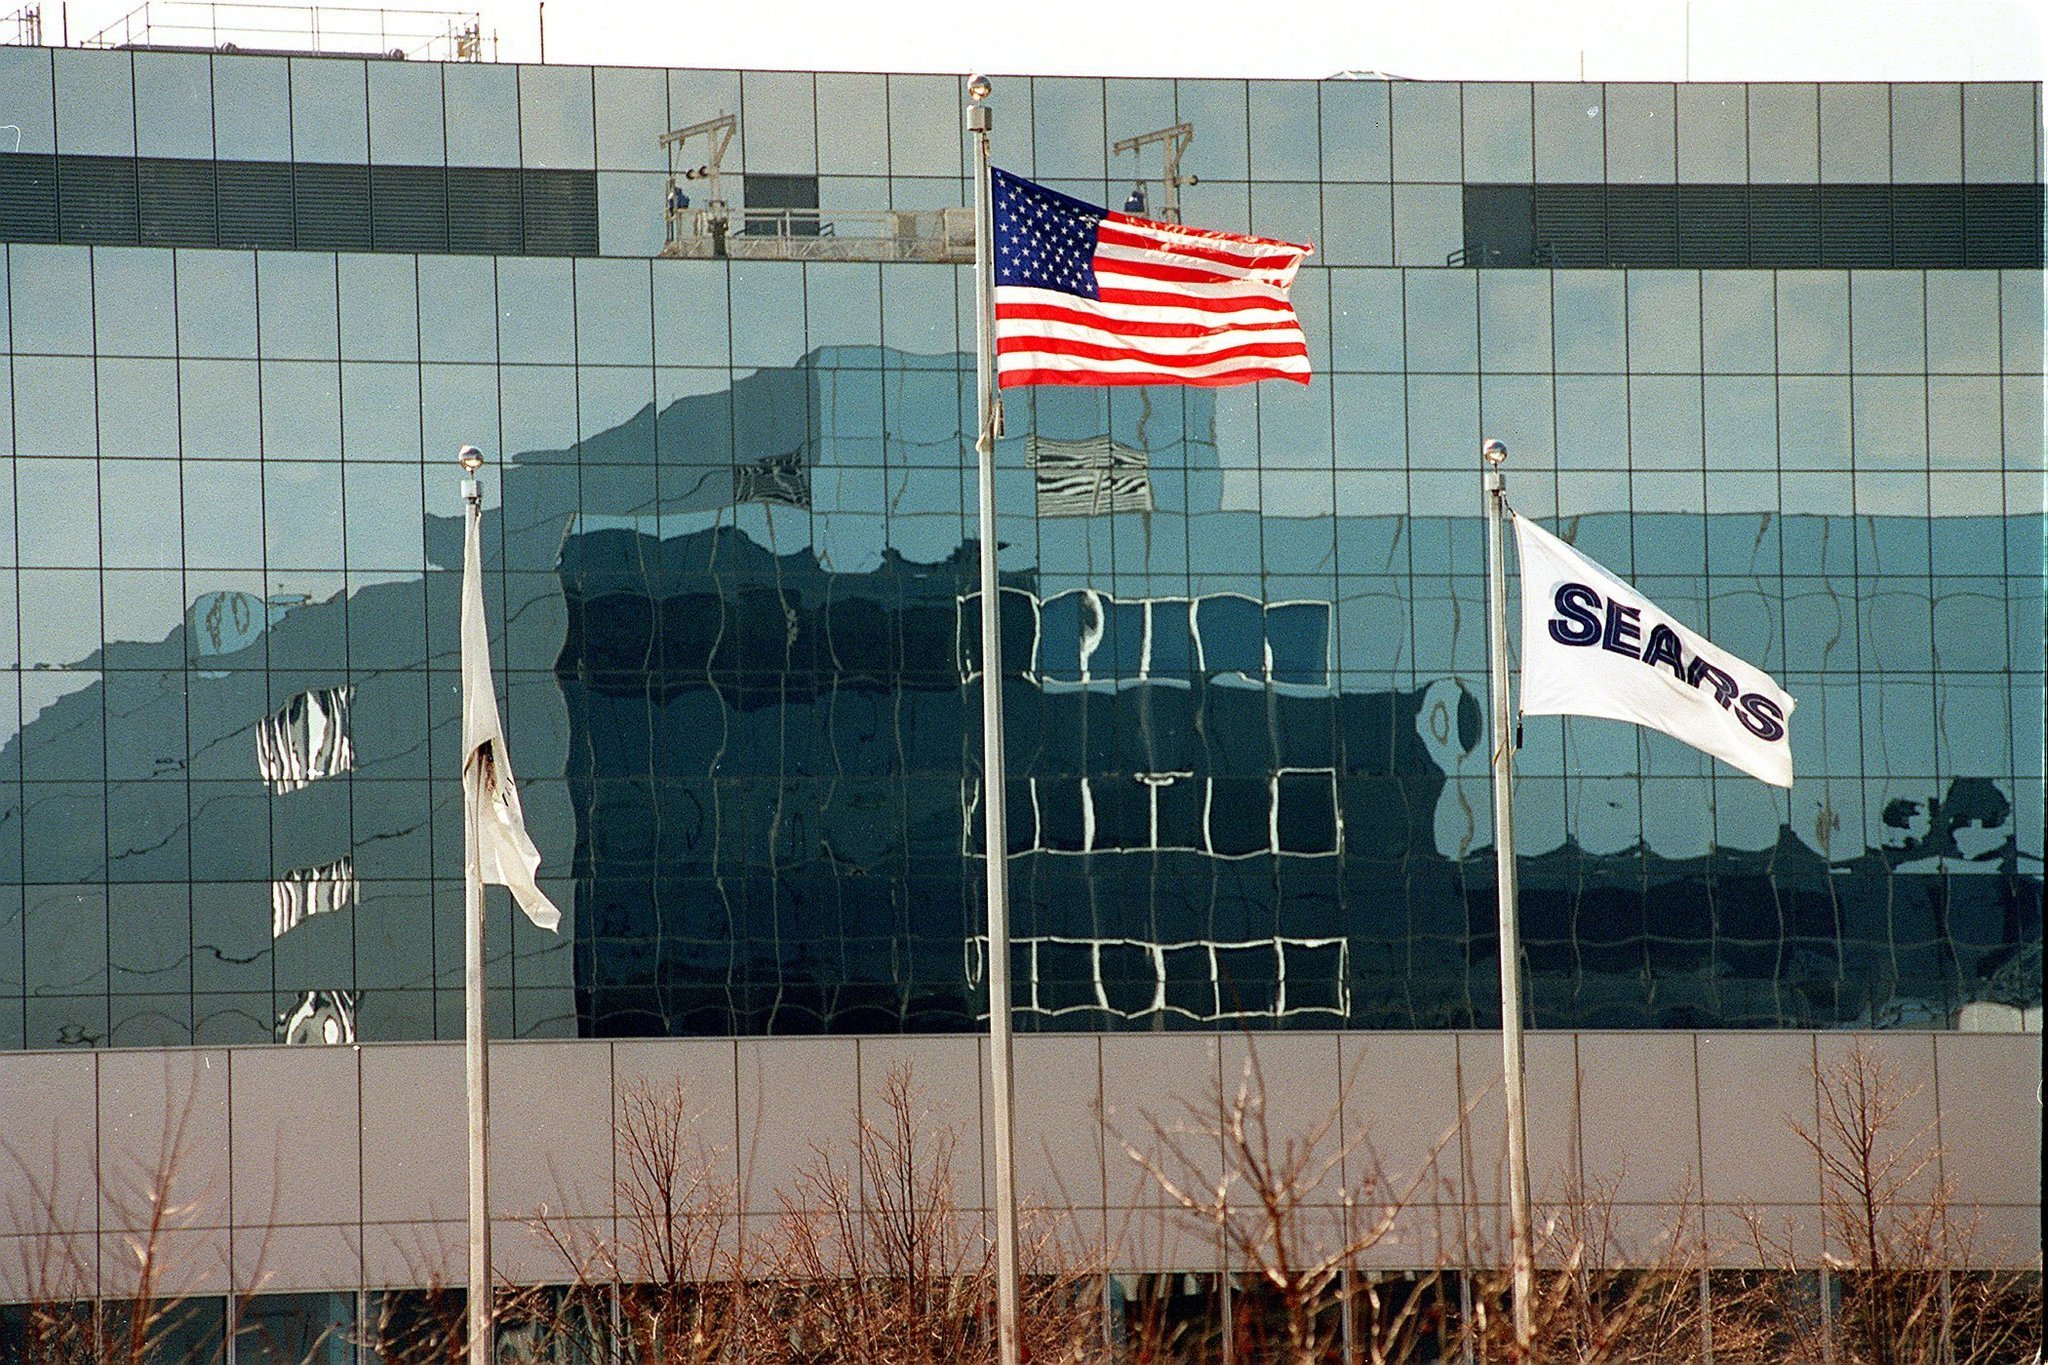 http://www.chicagotribune.com/business/ct-sears-layoffs-0226-biz-20160225-story.html